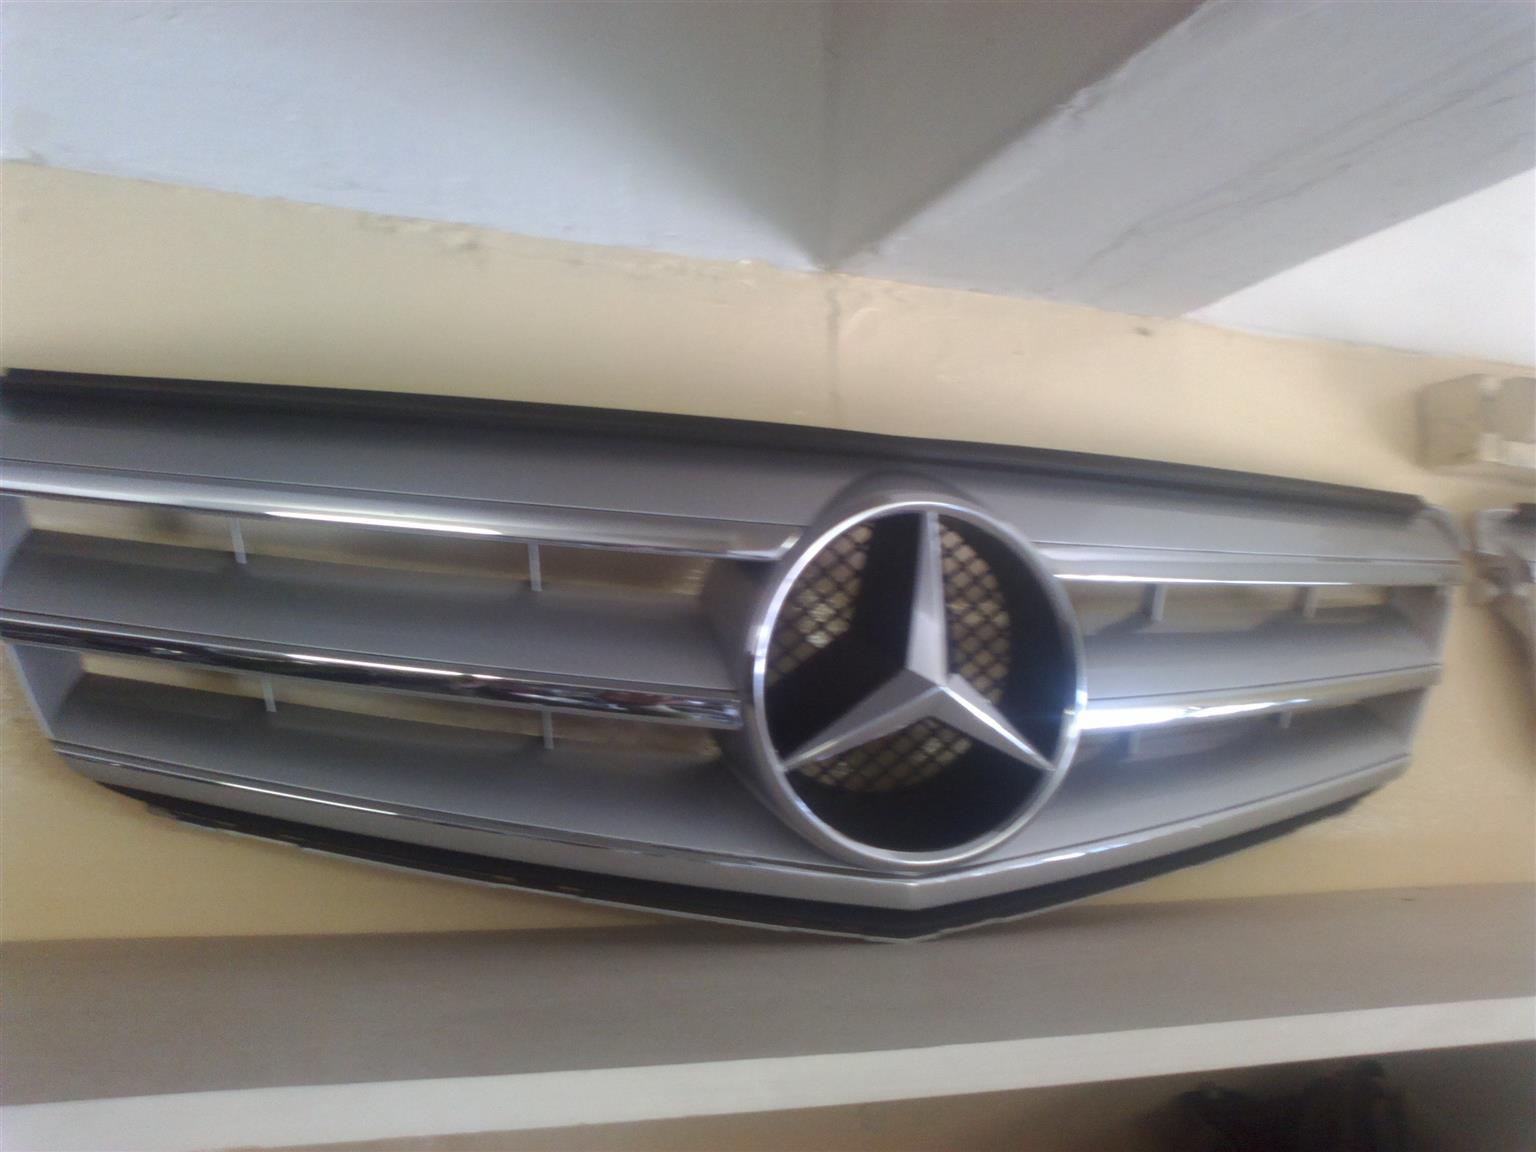 Mercedes Benz W204 Main grill available